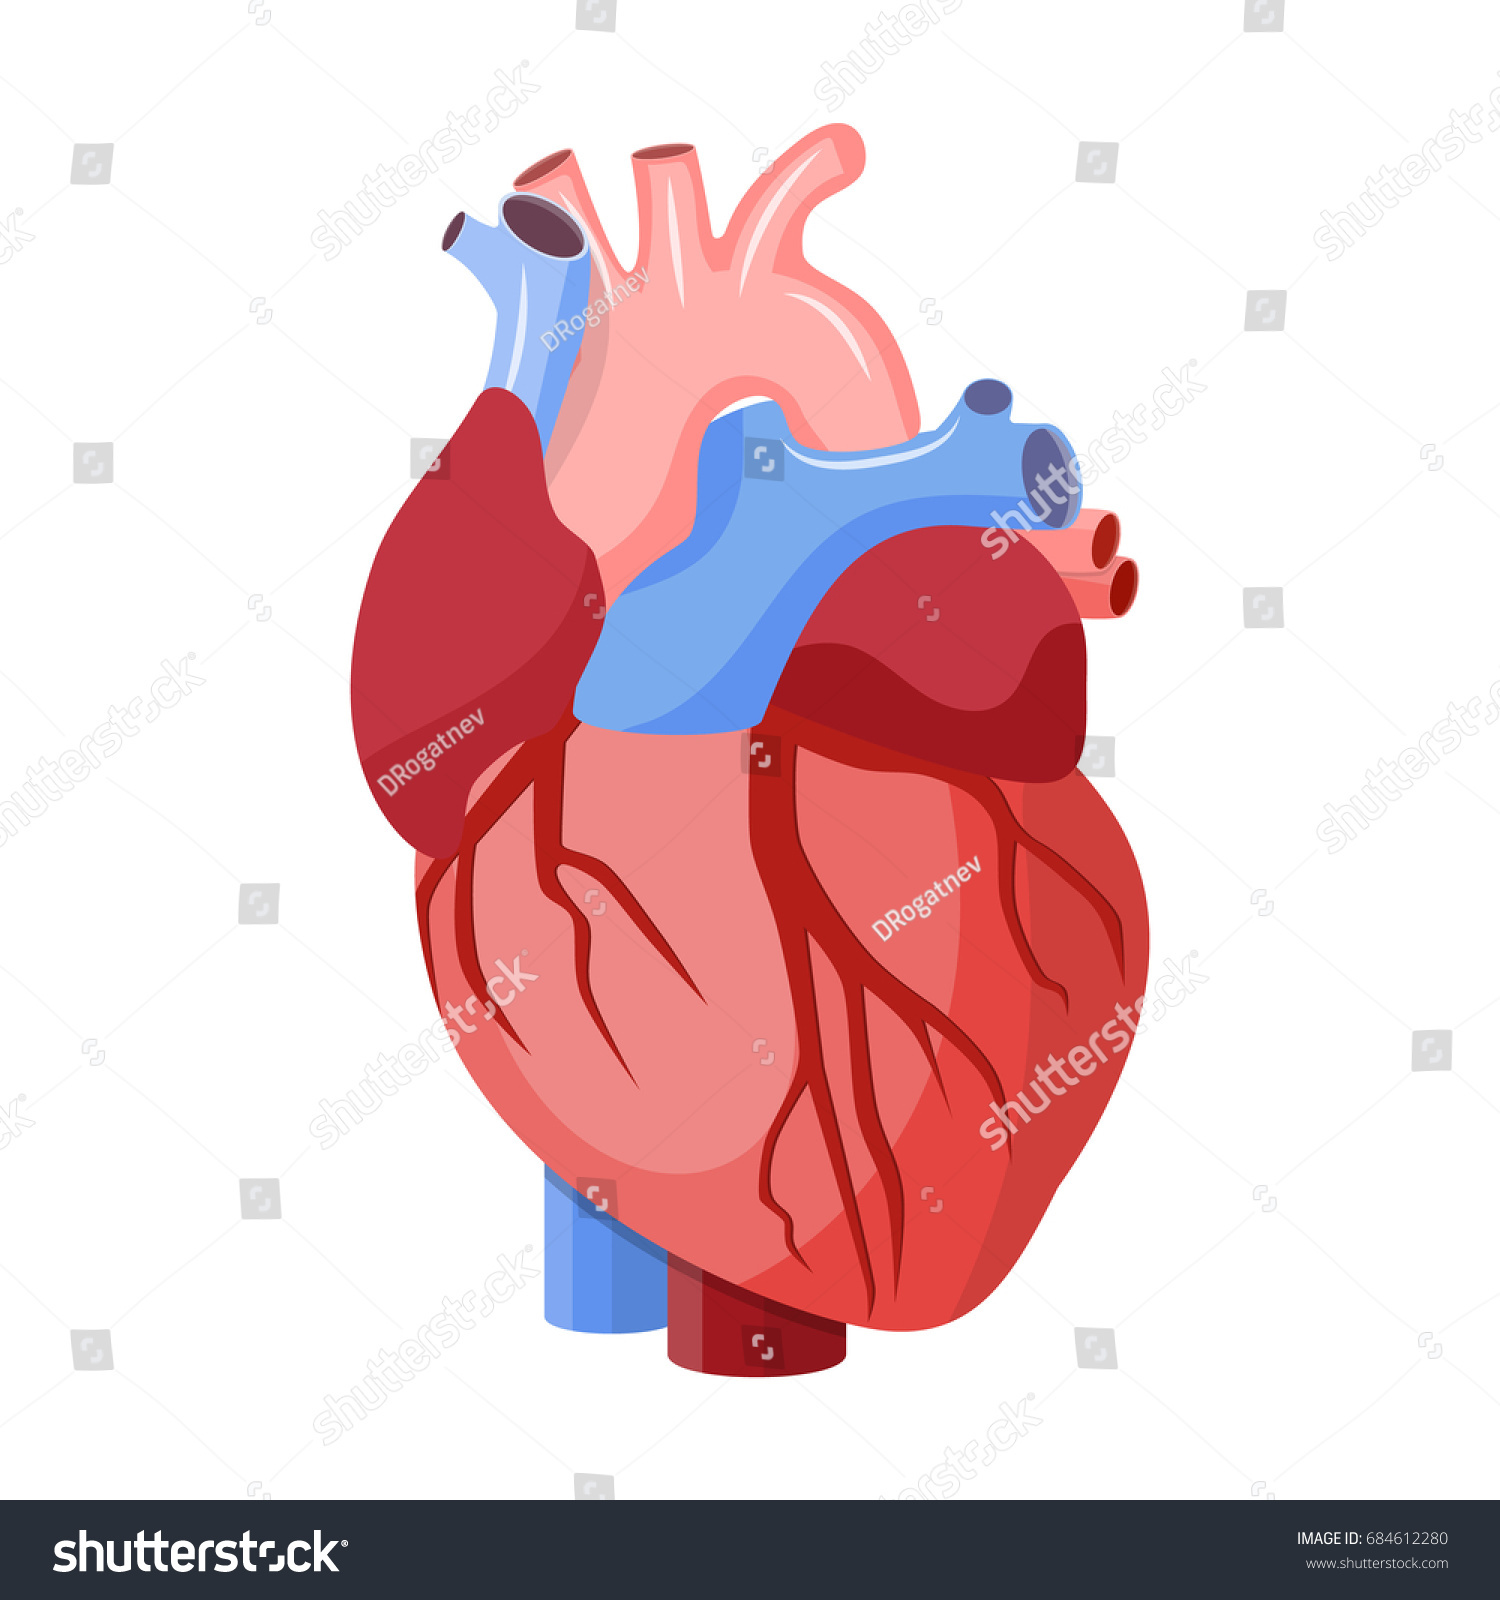 Anatomical Heart Isolated Muscular Organ Humans Stock Illustration